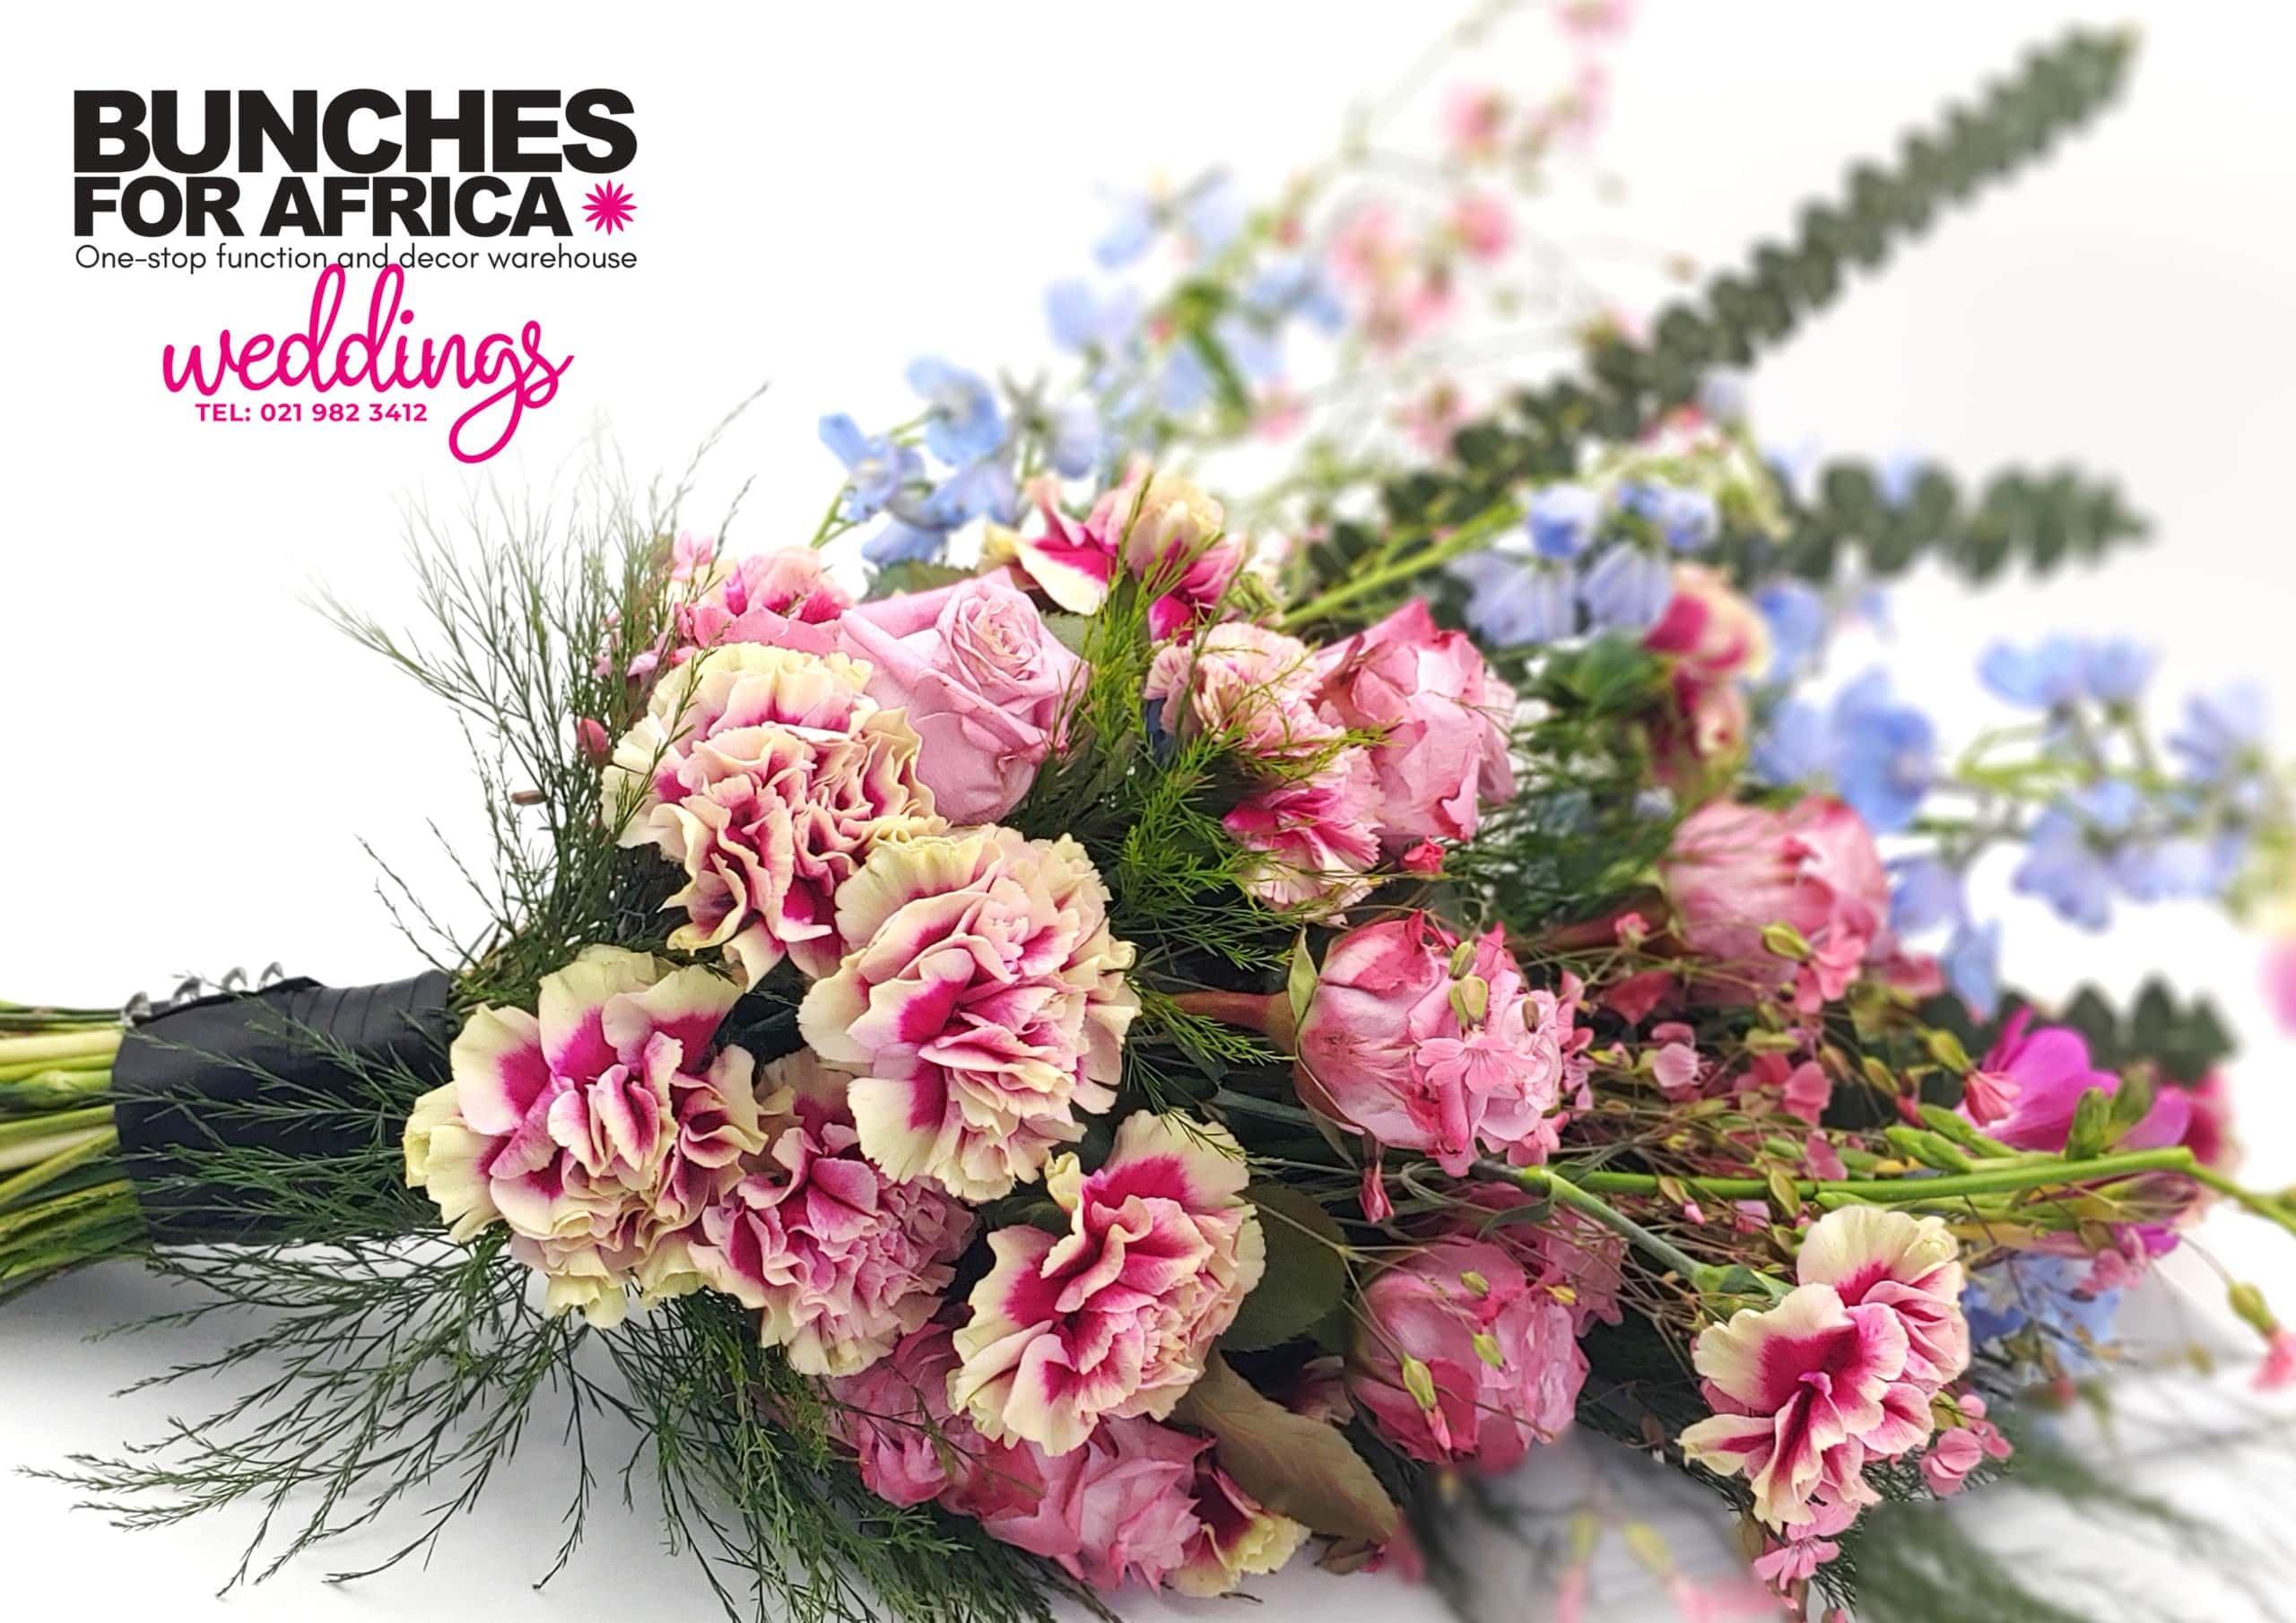 Weddings by Bunches for Africa Western Cape